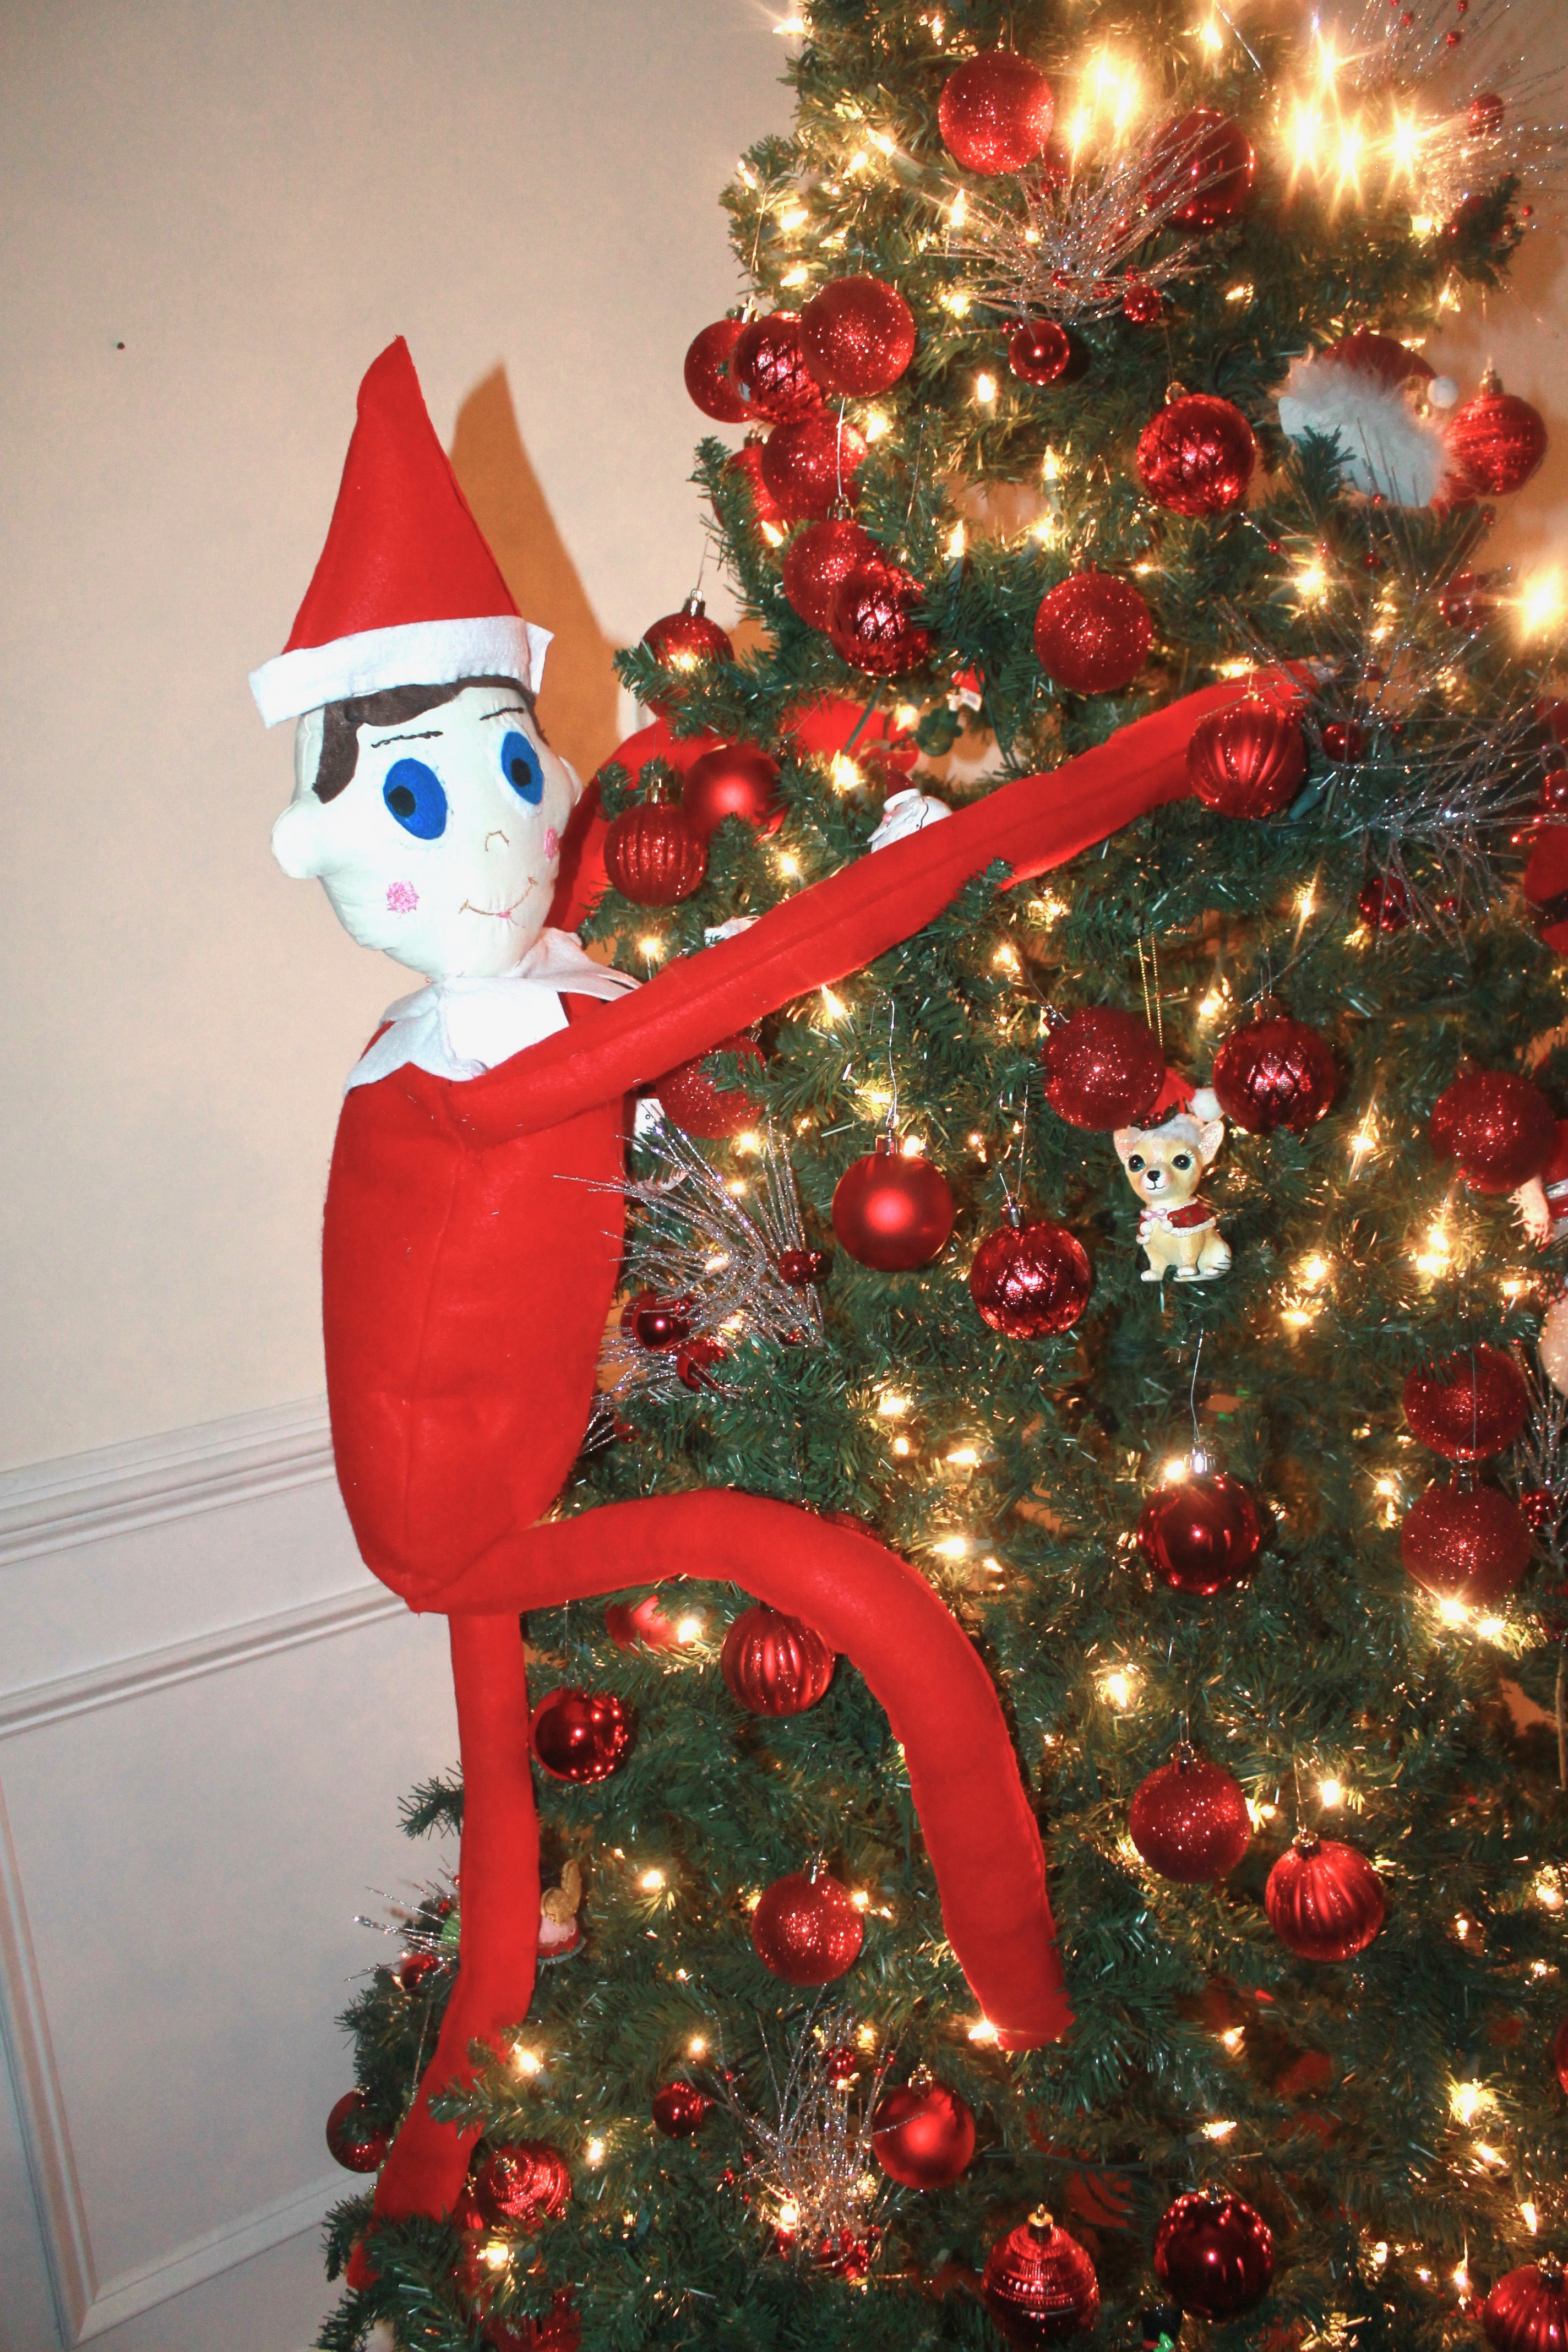 How to make a Life-size elf on the shelf